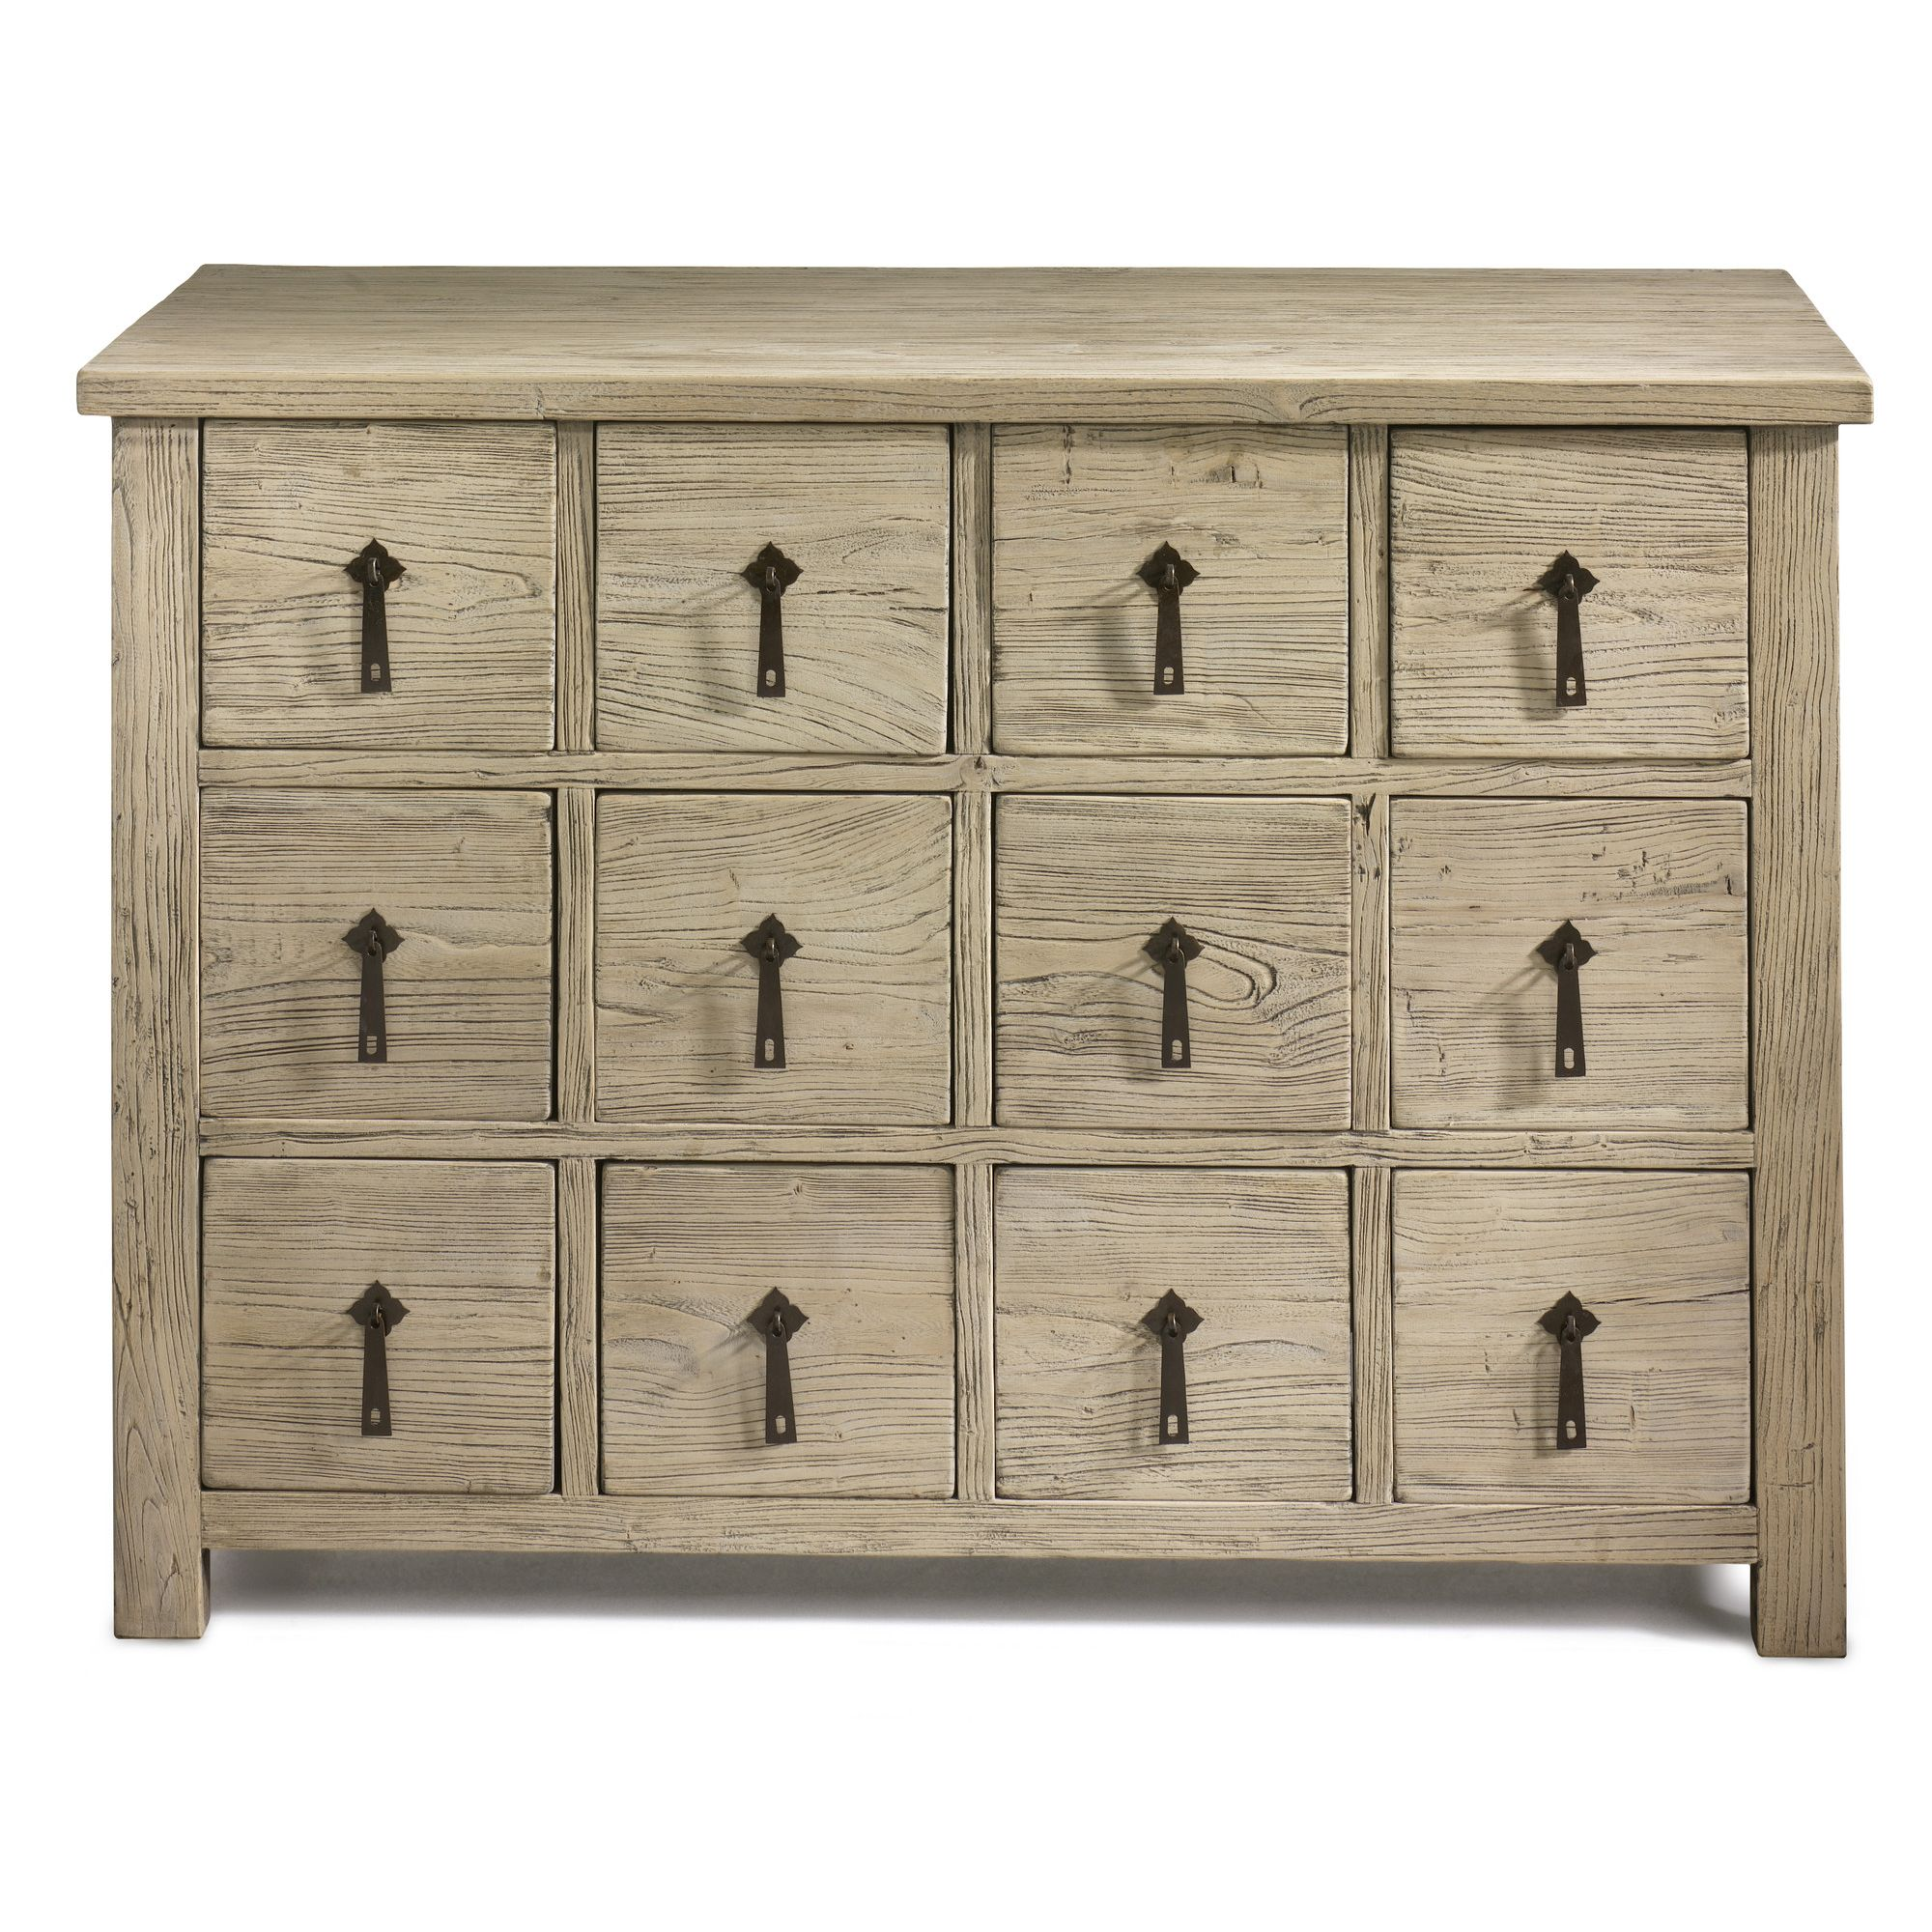 Shimu Chinese Country Furniture Twelve Drawer Chest at Tesco Direct